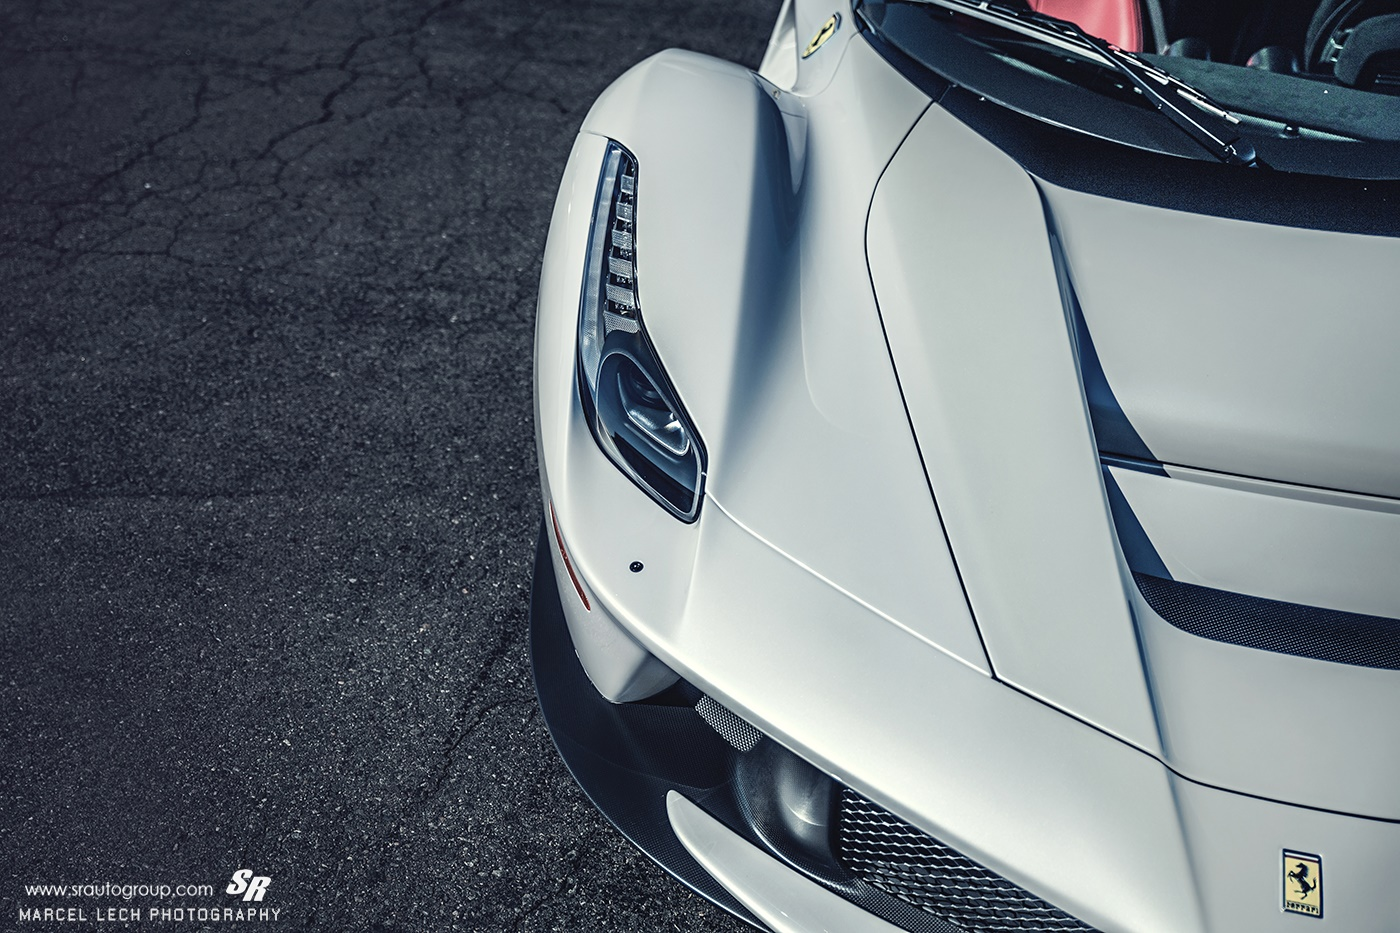 5 White Ferrari Laferrari Headlight Close Up Sssupersports